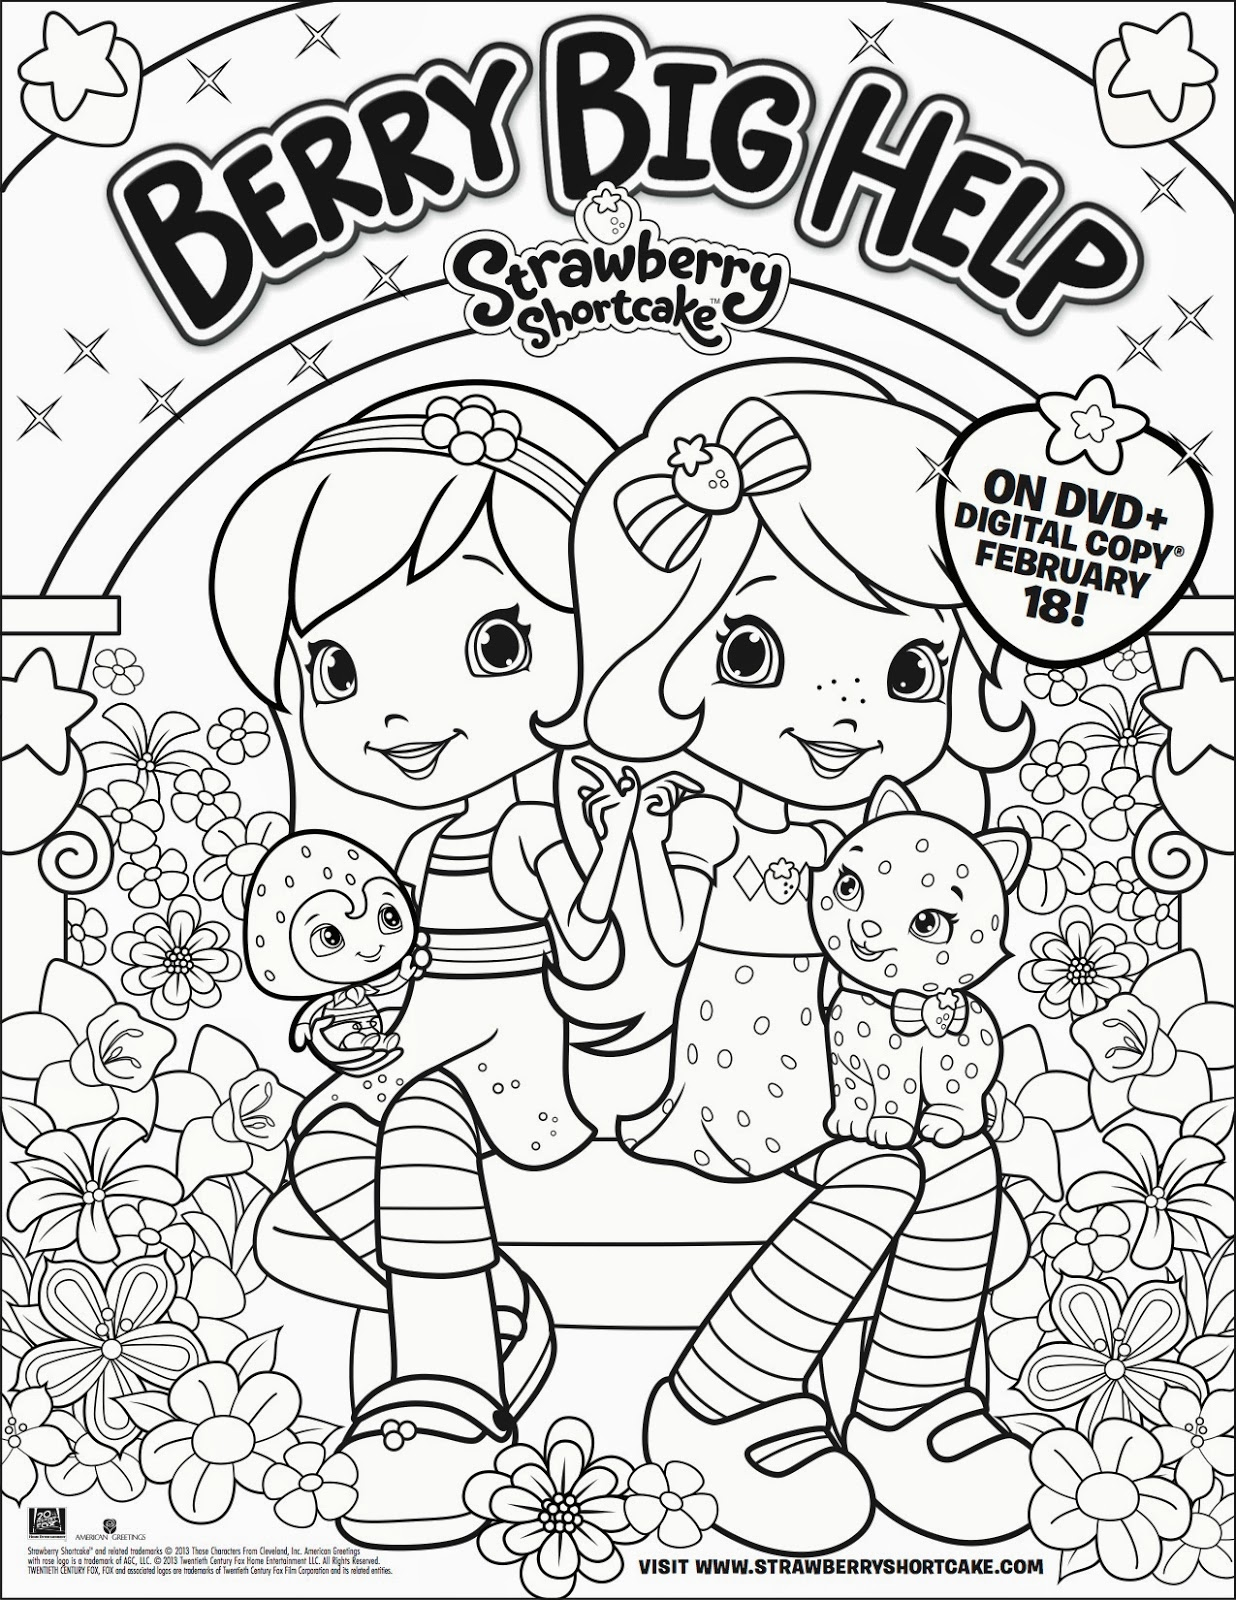 Strawberry Shortcake and Friends coloring page | Free Printable ... | 1600x1236